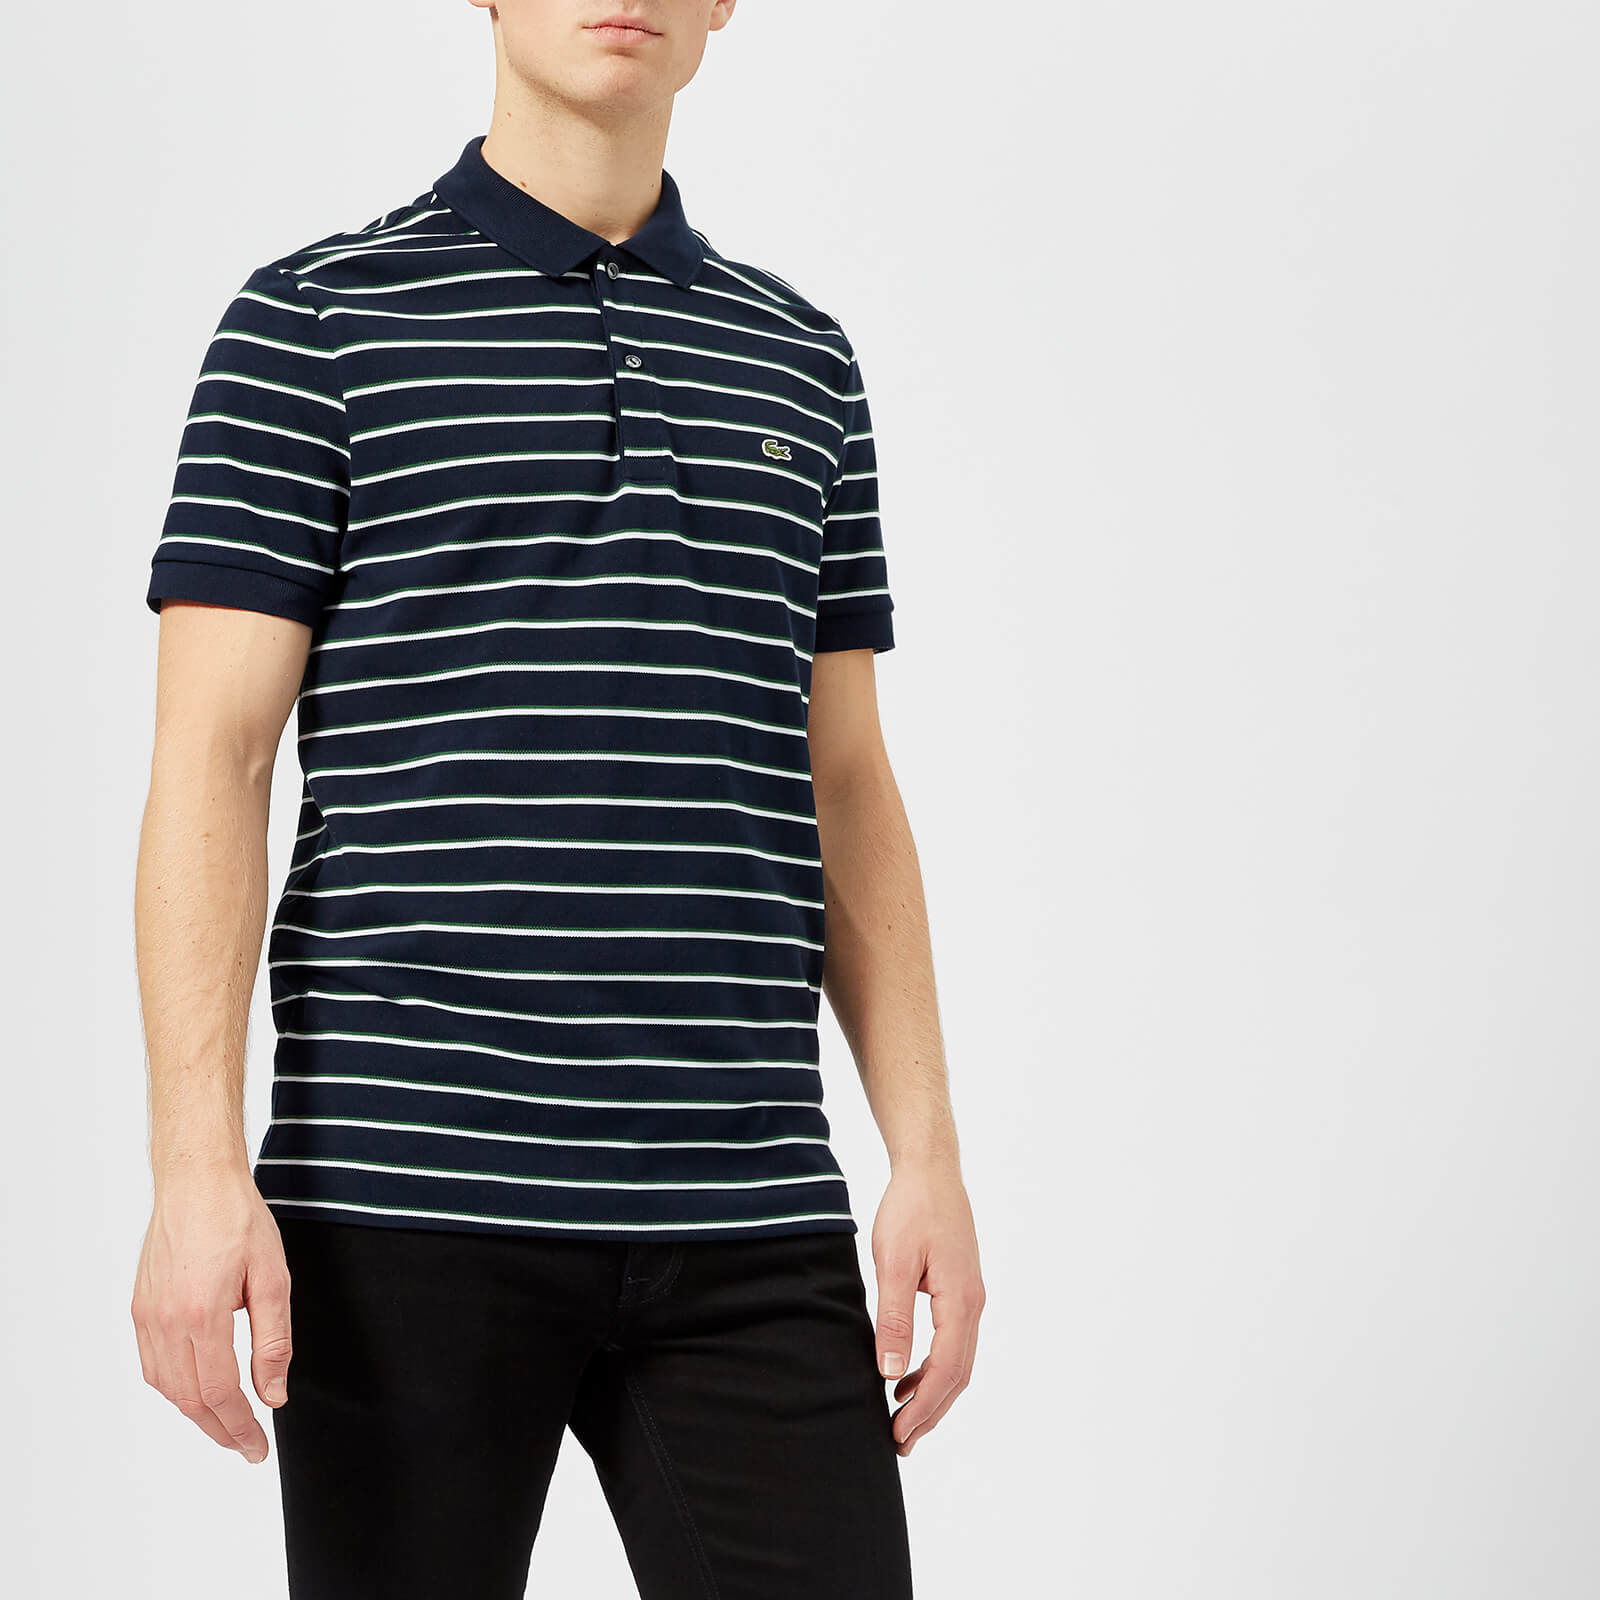 9032486061a9 Lacoste Men s Short Sleeved Striped Polo Shirt - Navy Blue White-Green -  Free UK Delivery over £50